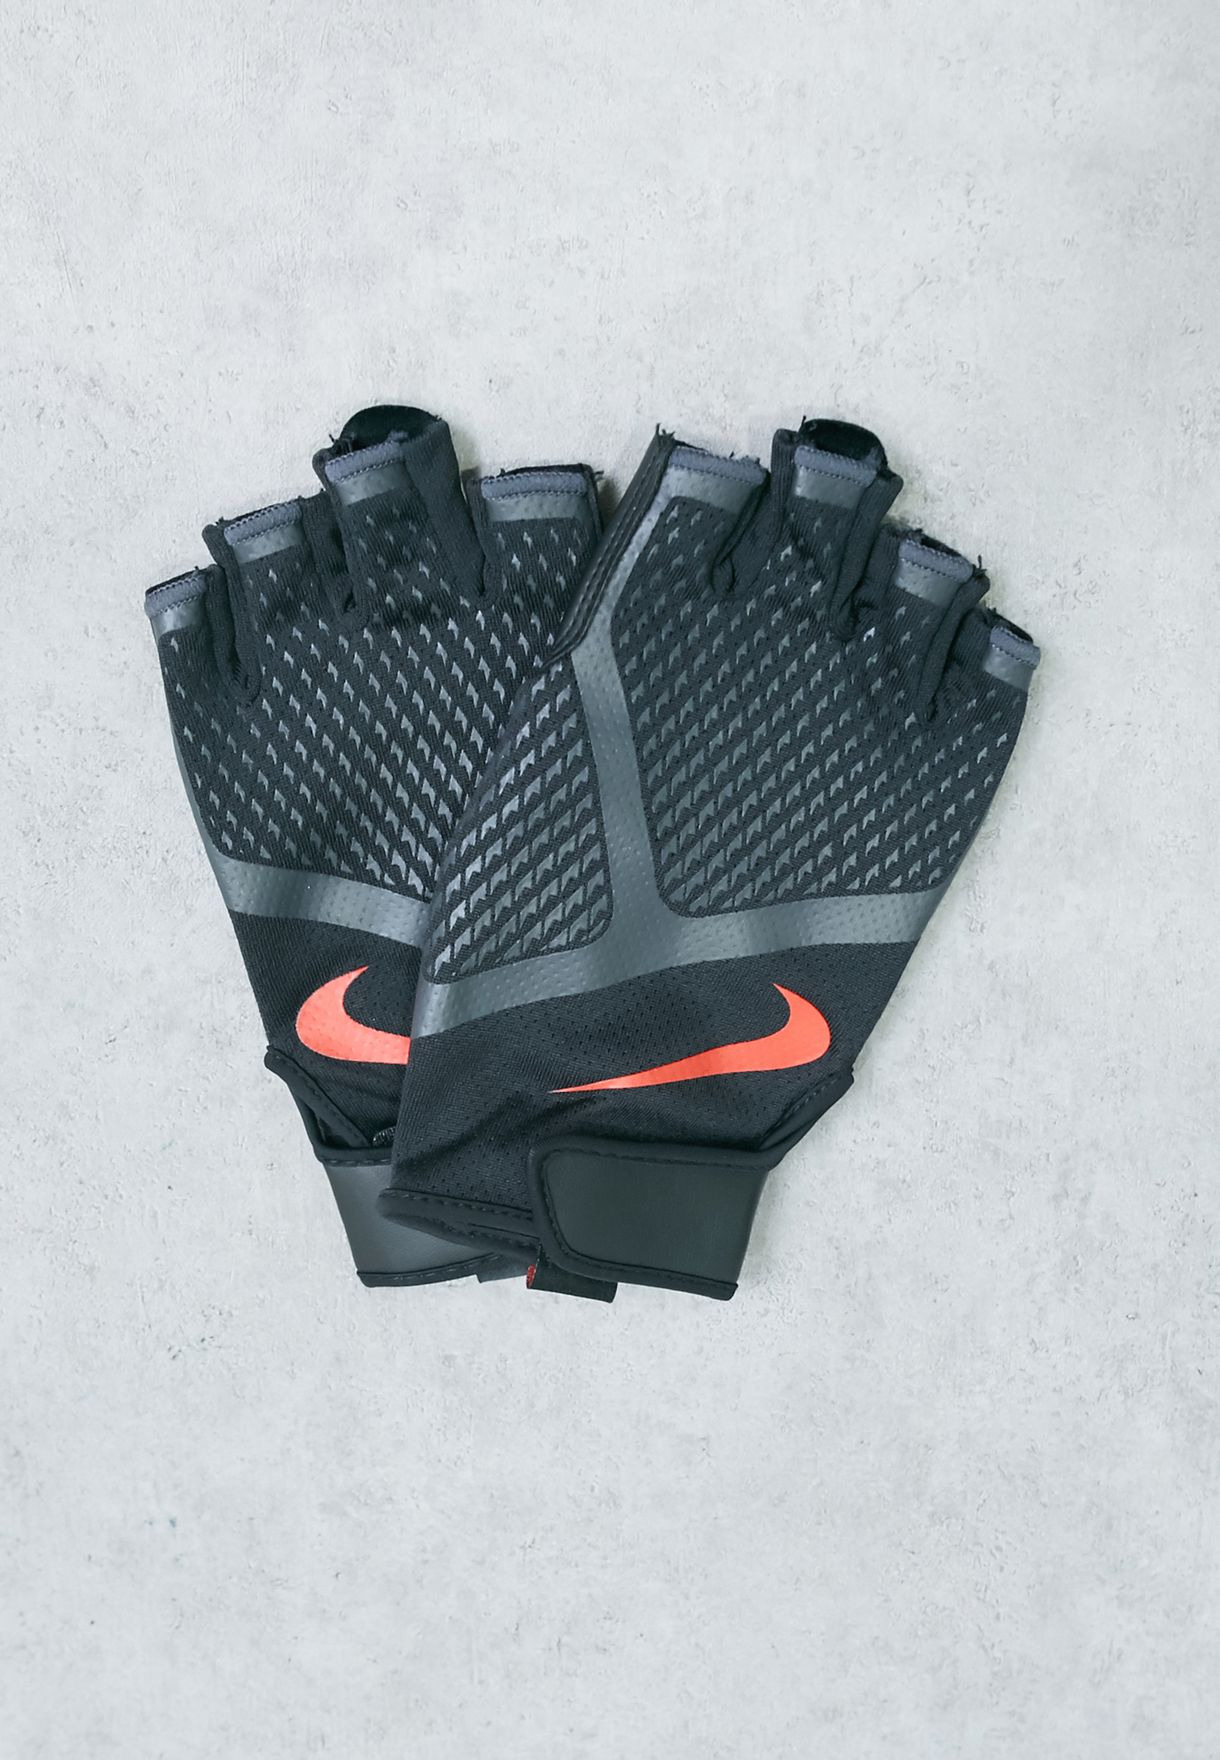 fabe4e84d5 Renegade Training Gloves